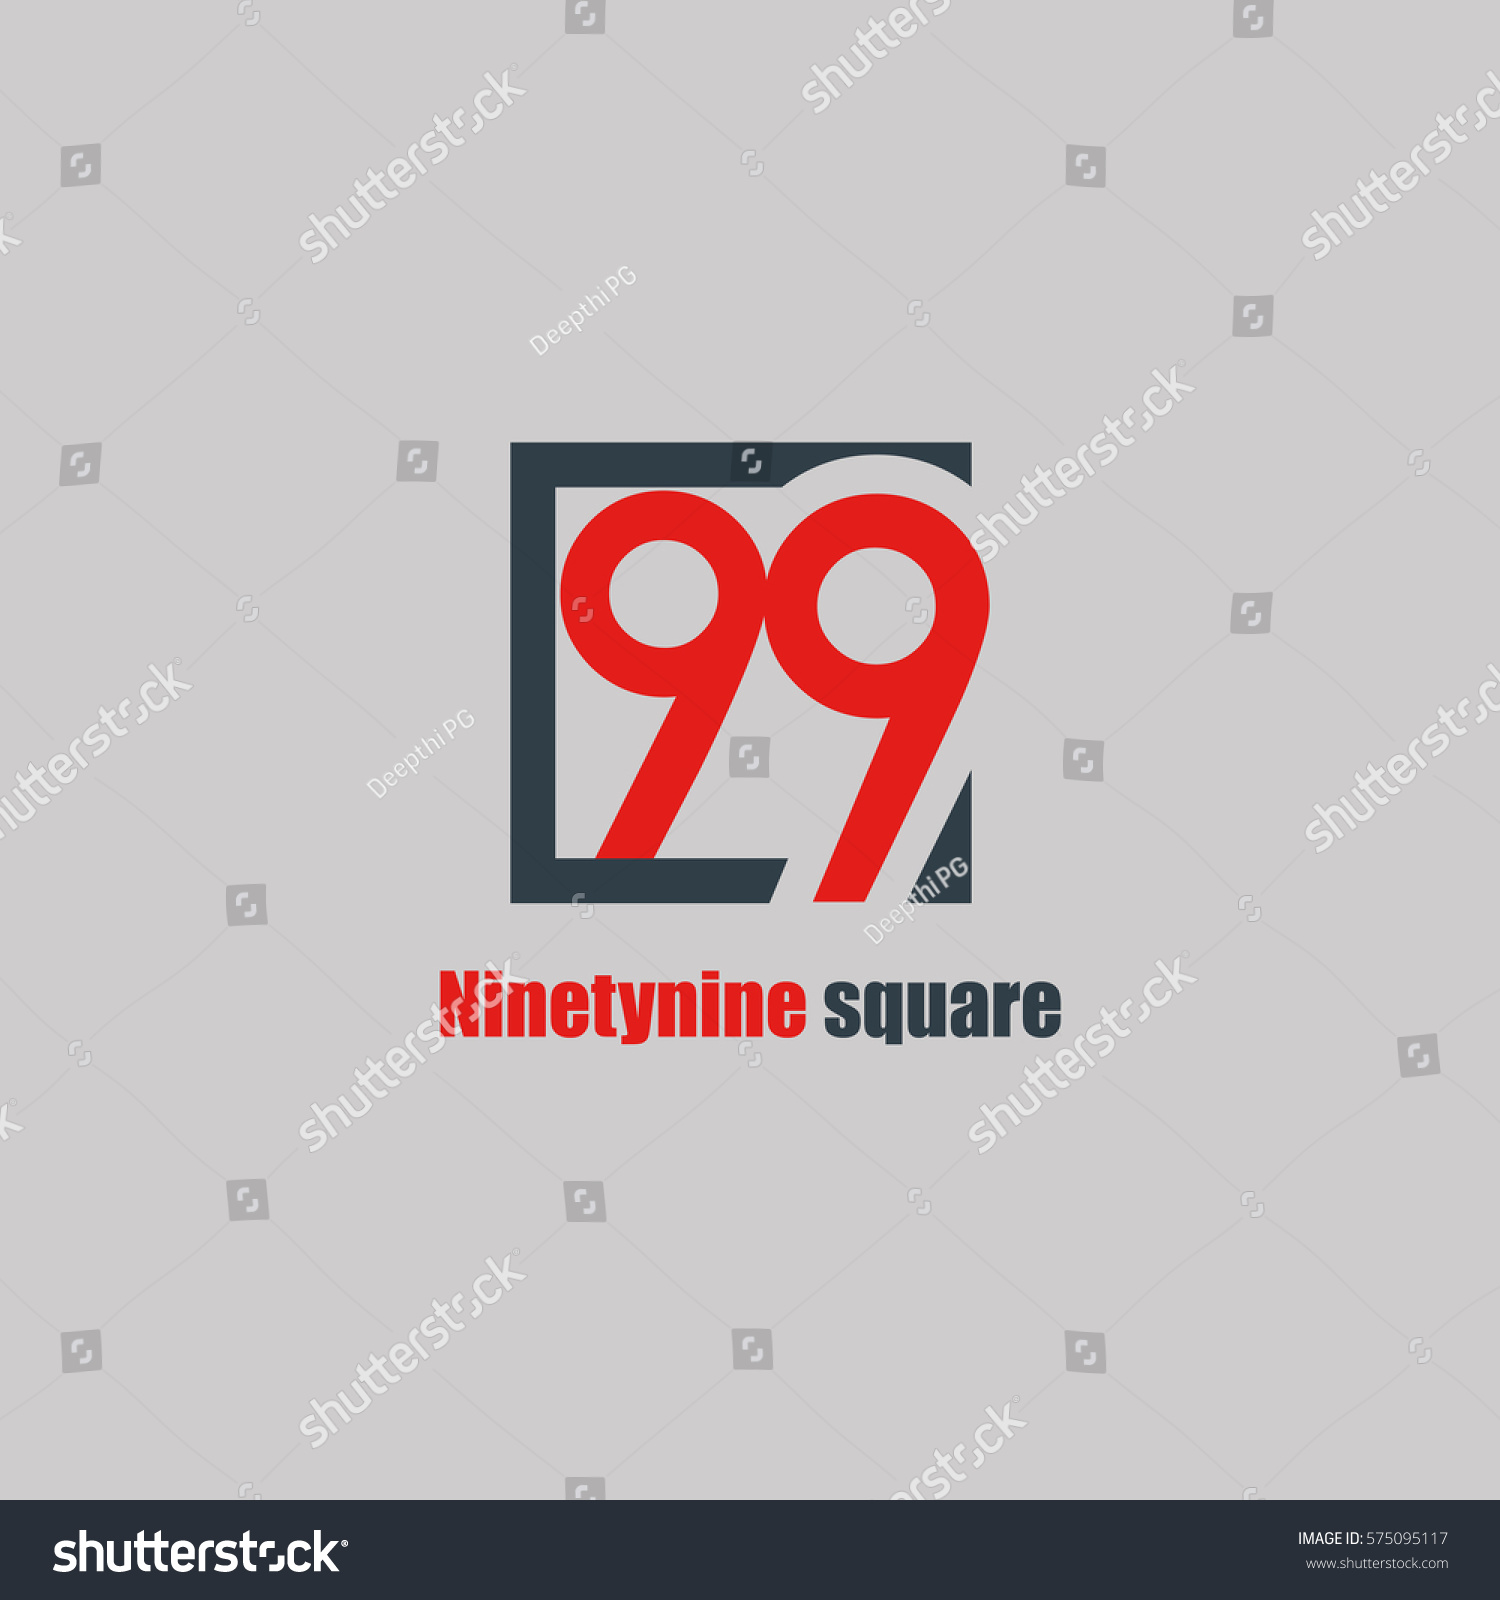 99 Number Logo Design Vector Element Stock Vector